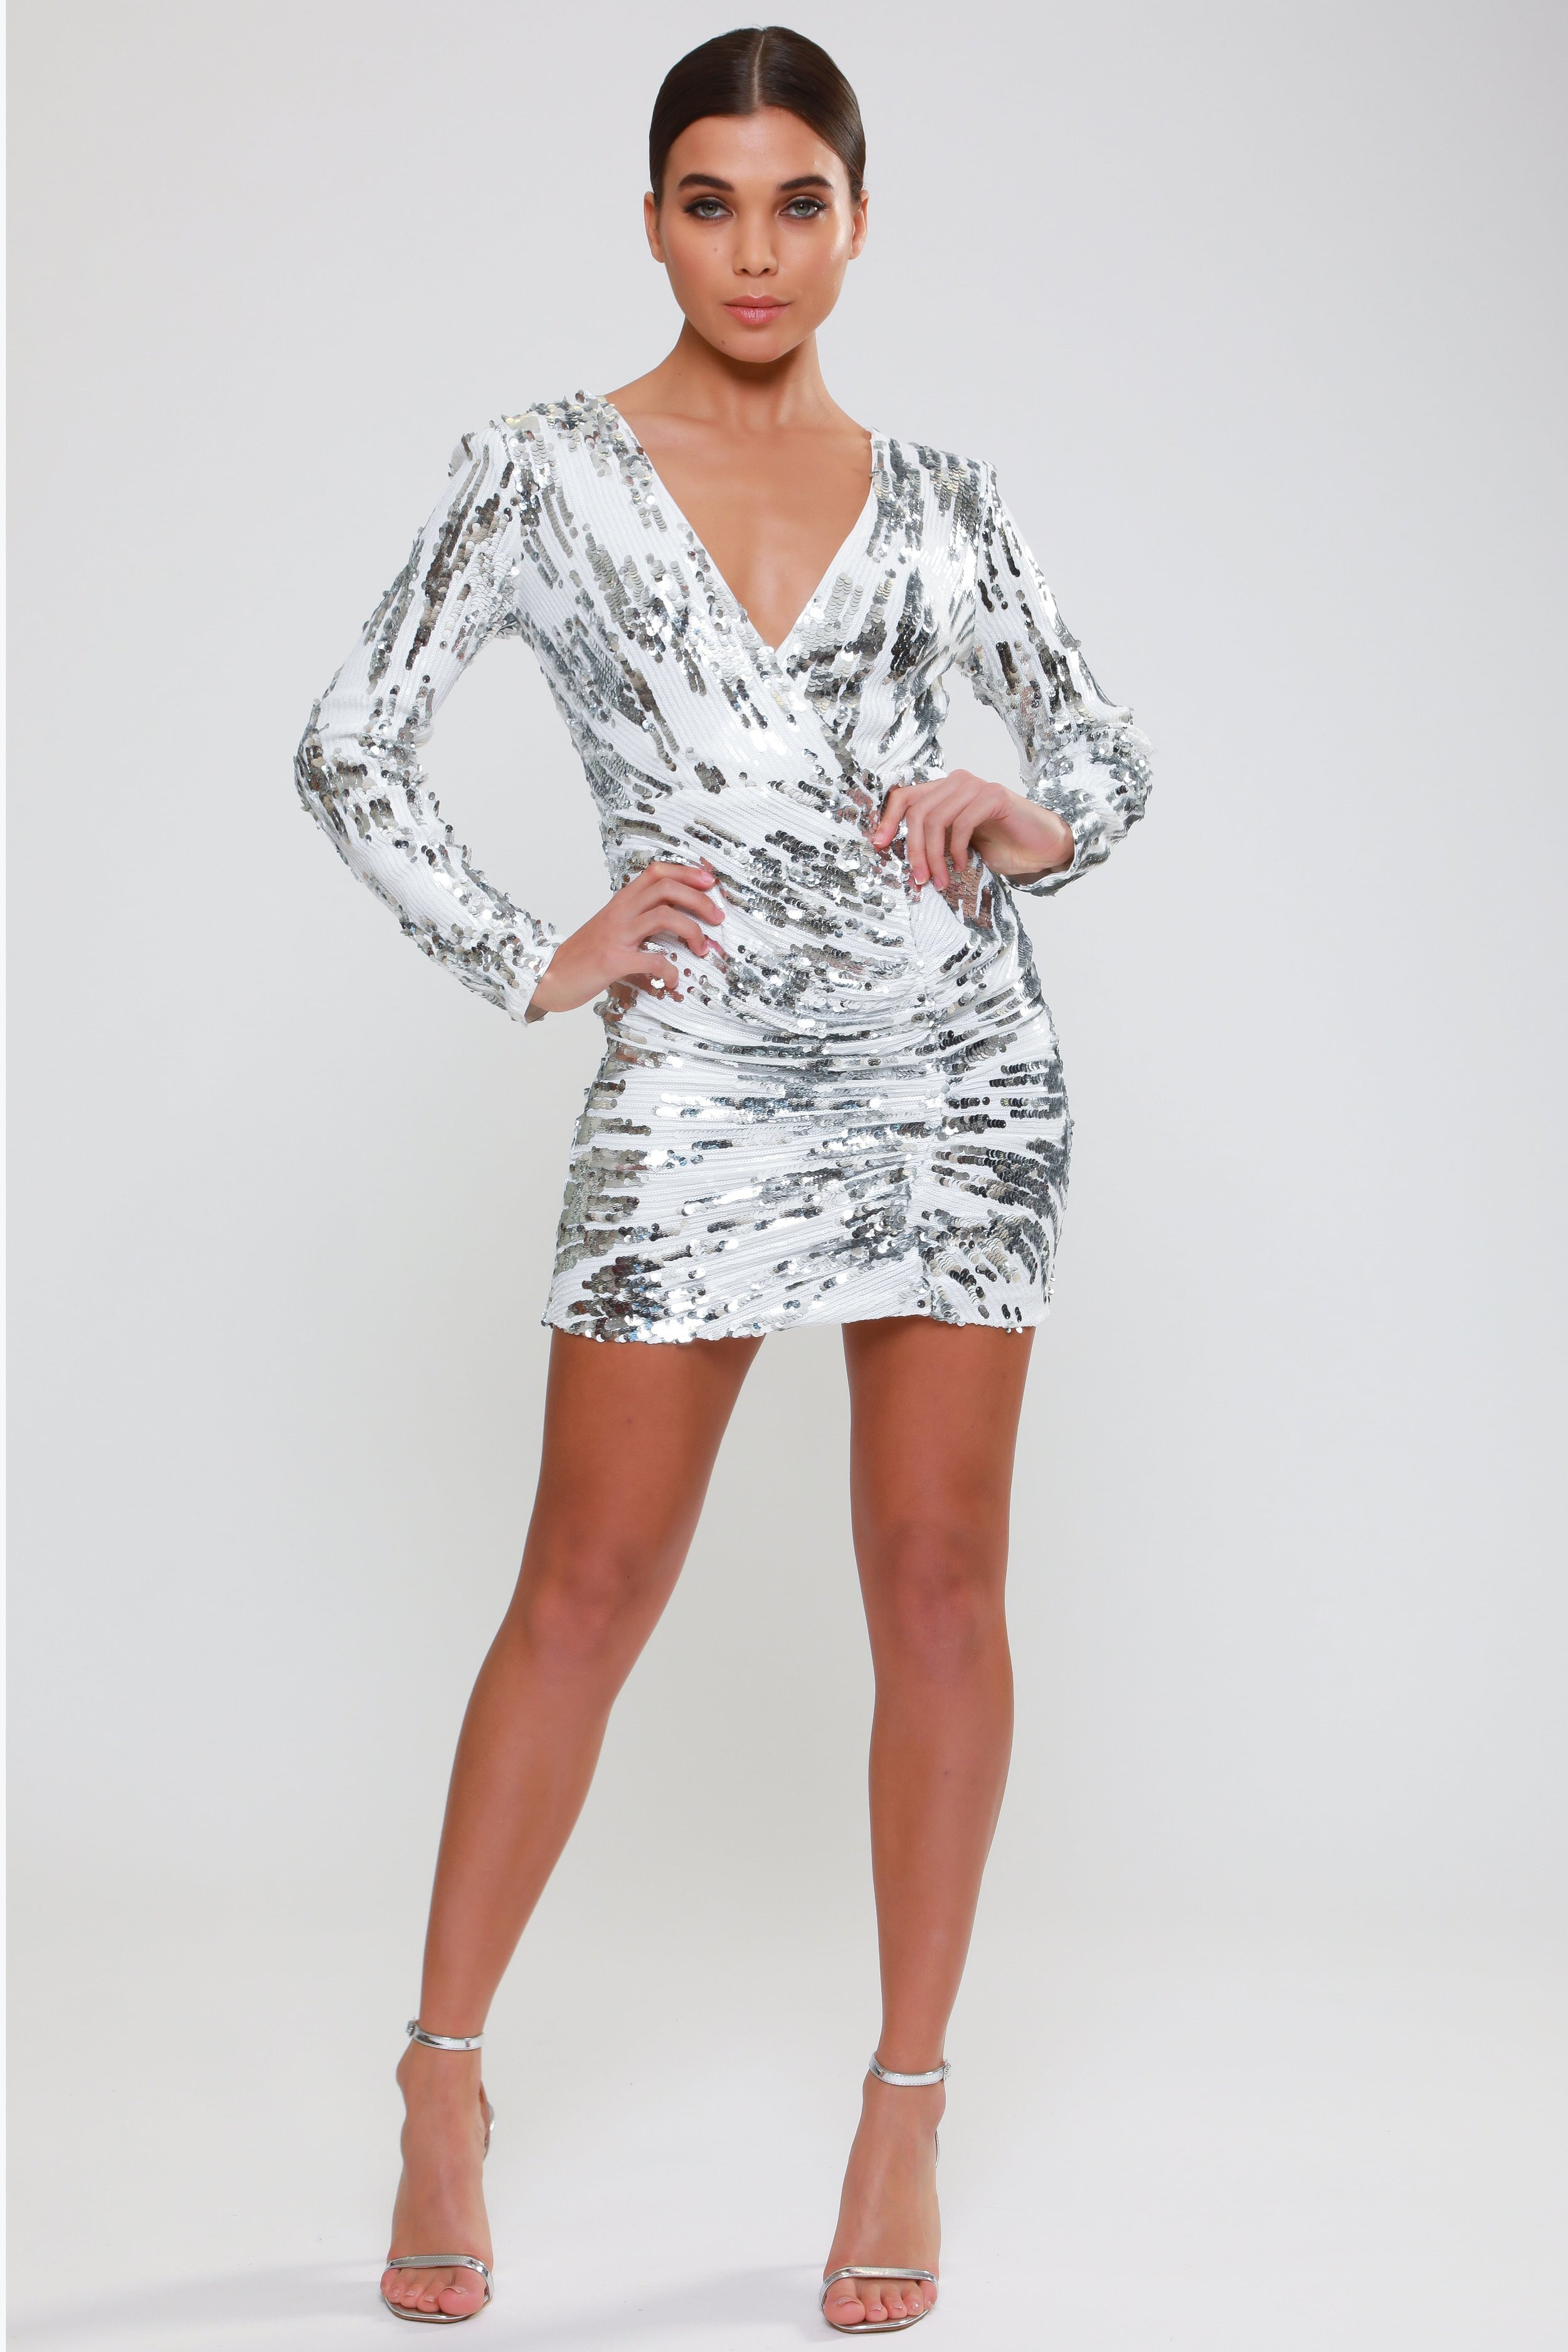 Long Sleeve Lace  Back Sequin Dress   £78.00